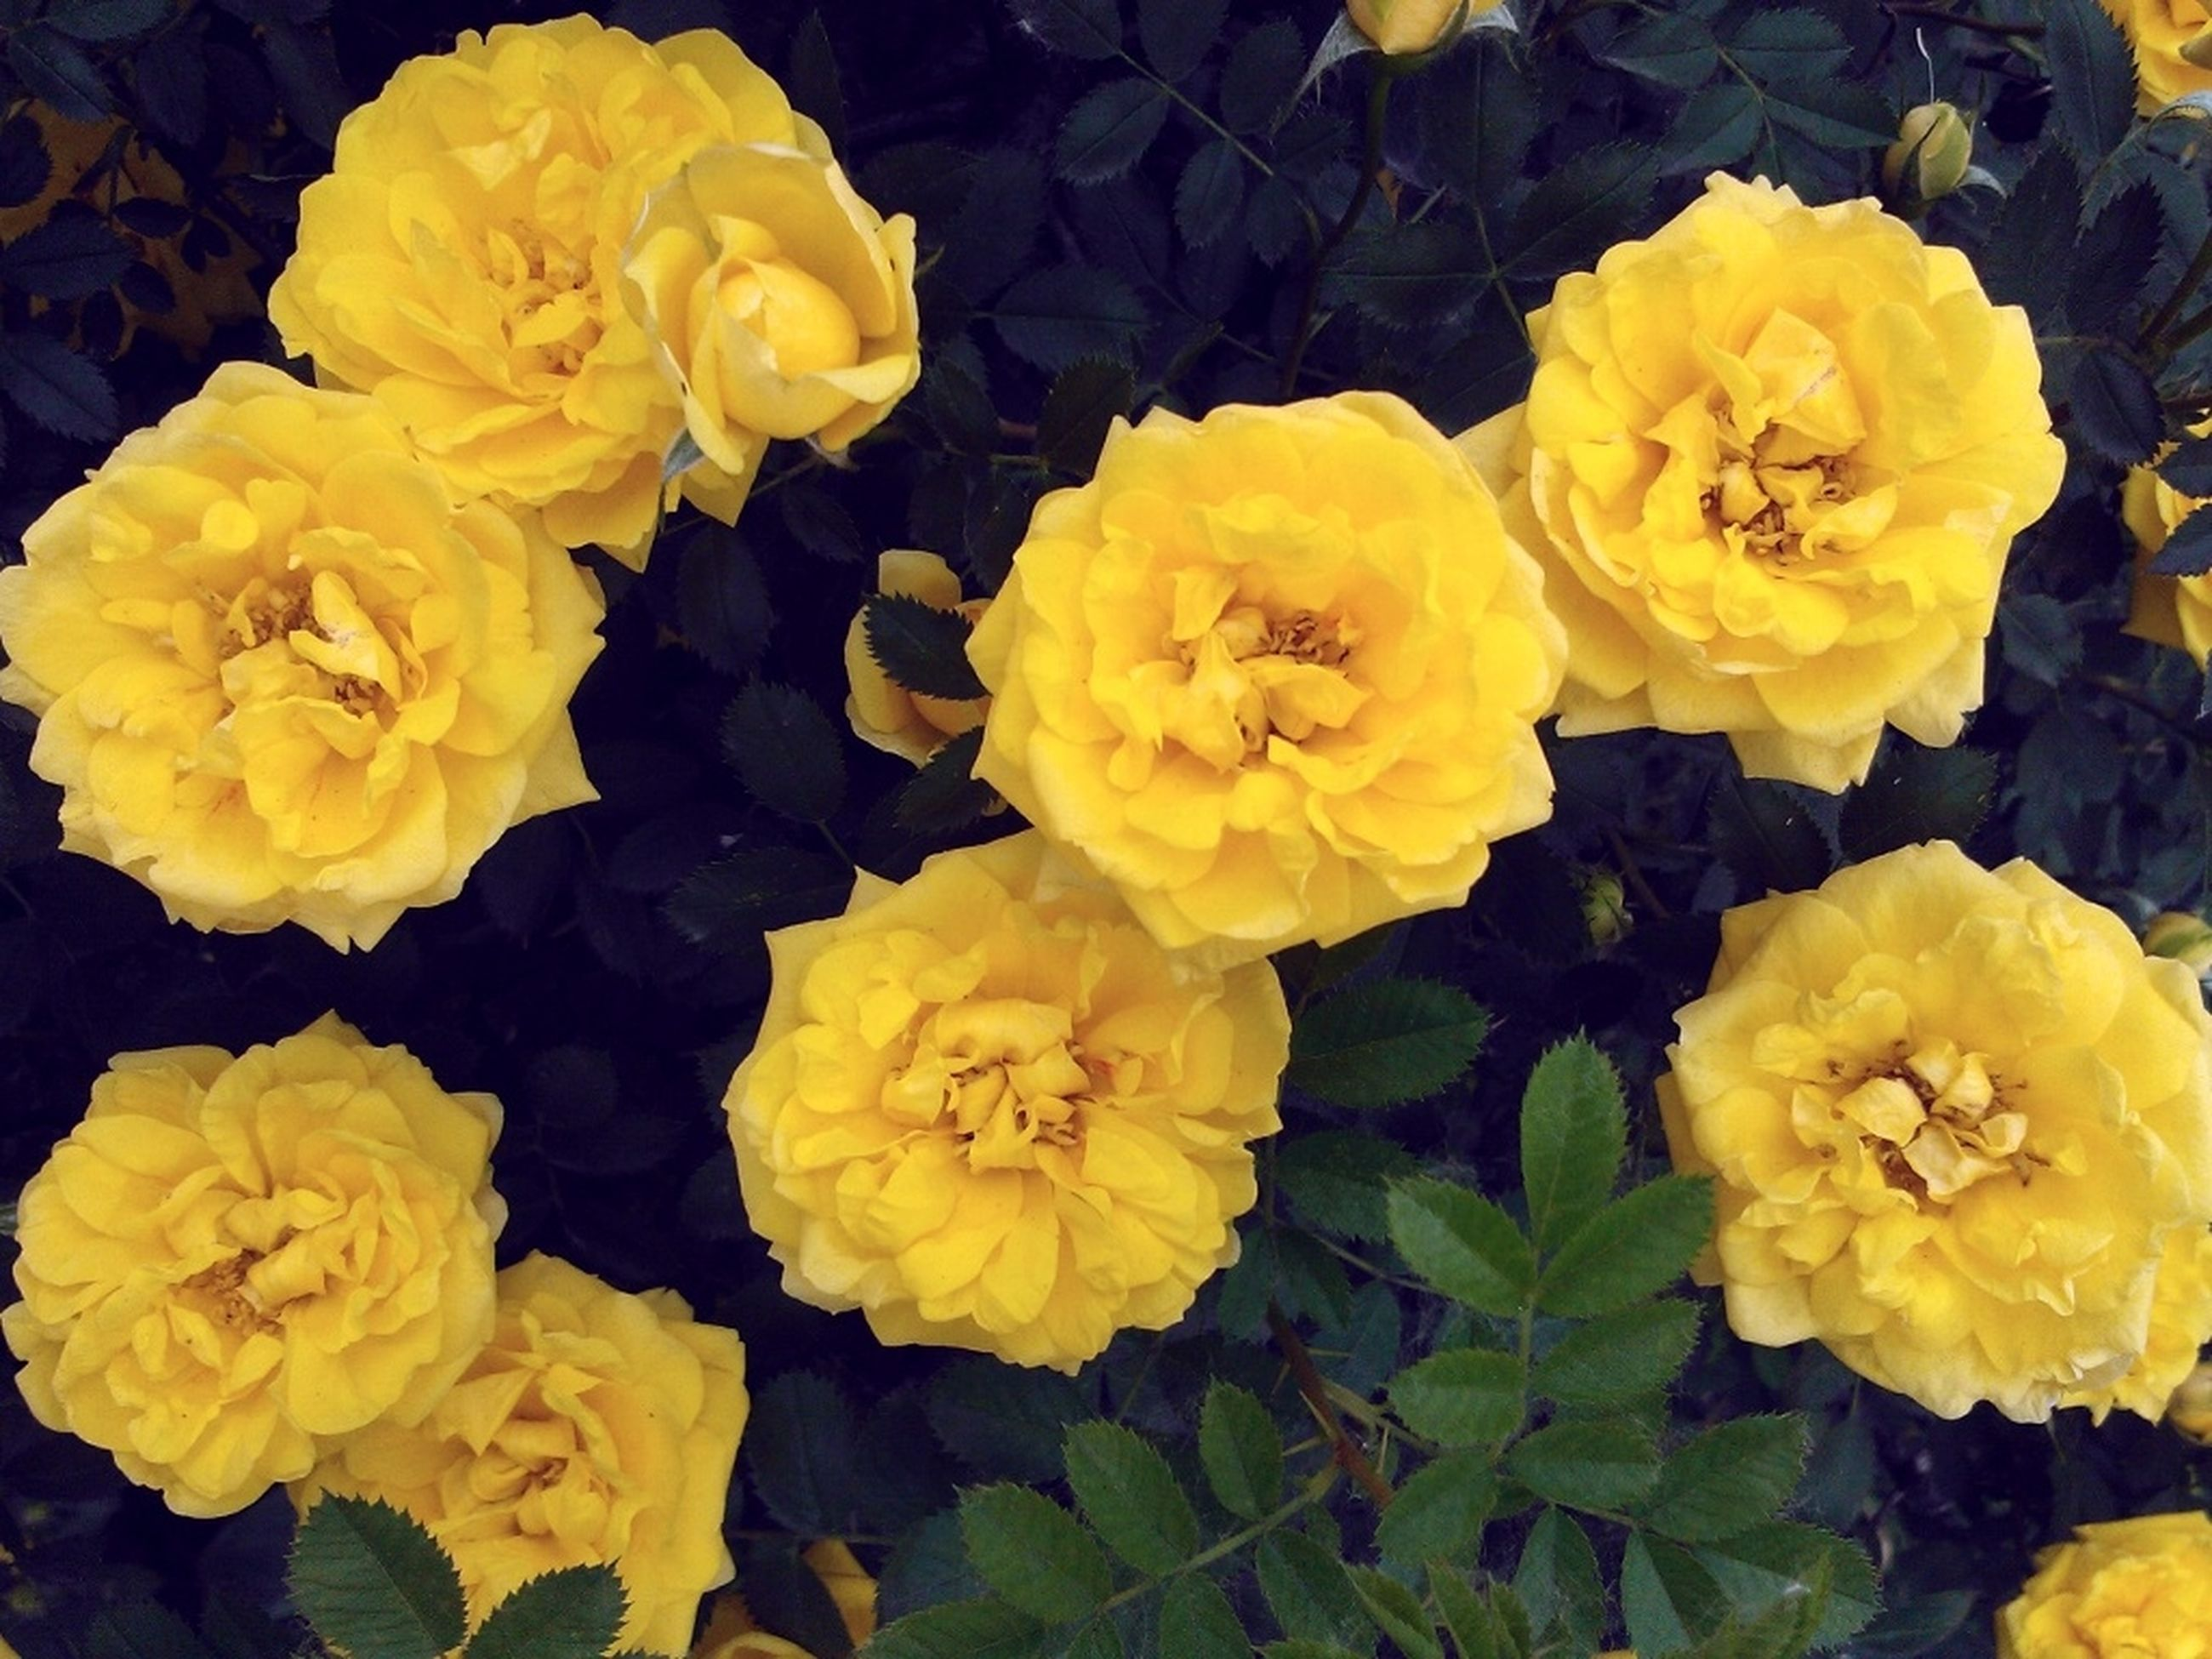 flower, yellow, petal, freshness, fragility, flower head, beauty in nature, growth, blooming, nature, high angle view, plant, close-up, rose - flower, in bloom, full frame, vibrant color, bunch of flowers, blossom, springtime